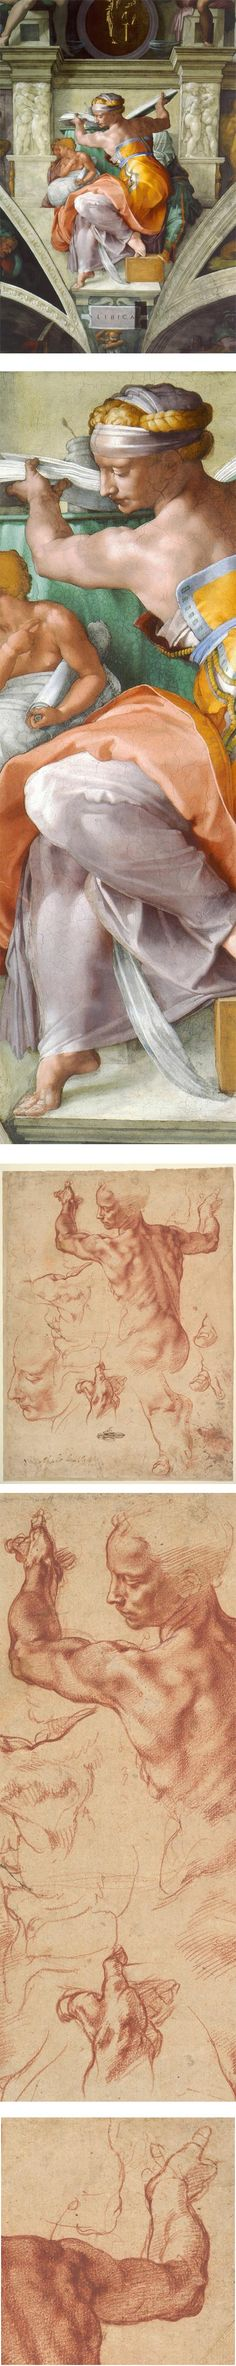 MICHELANGELO Buonarroti (1475-1564) - The Libyan Sibyl and Studies, 1511, Cappella Sistina, Vatican